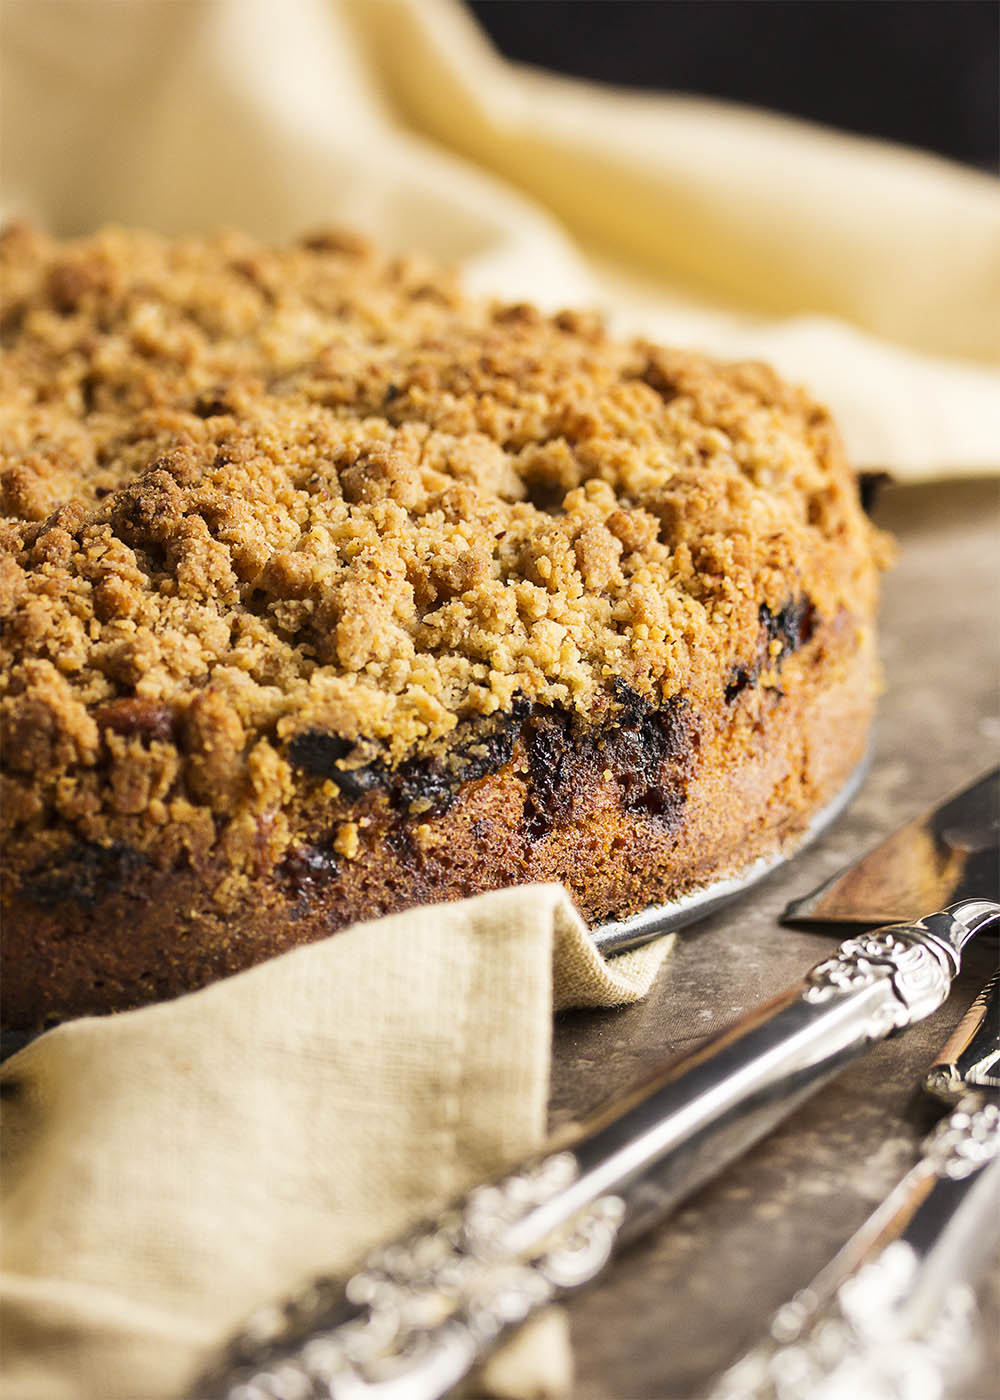 A whole rhubarb coffee cake with crumb topping on a table ready to be served.